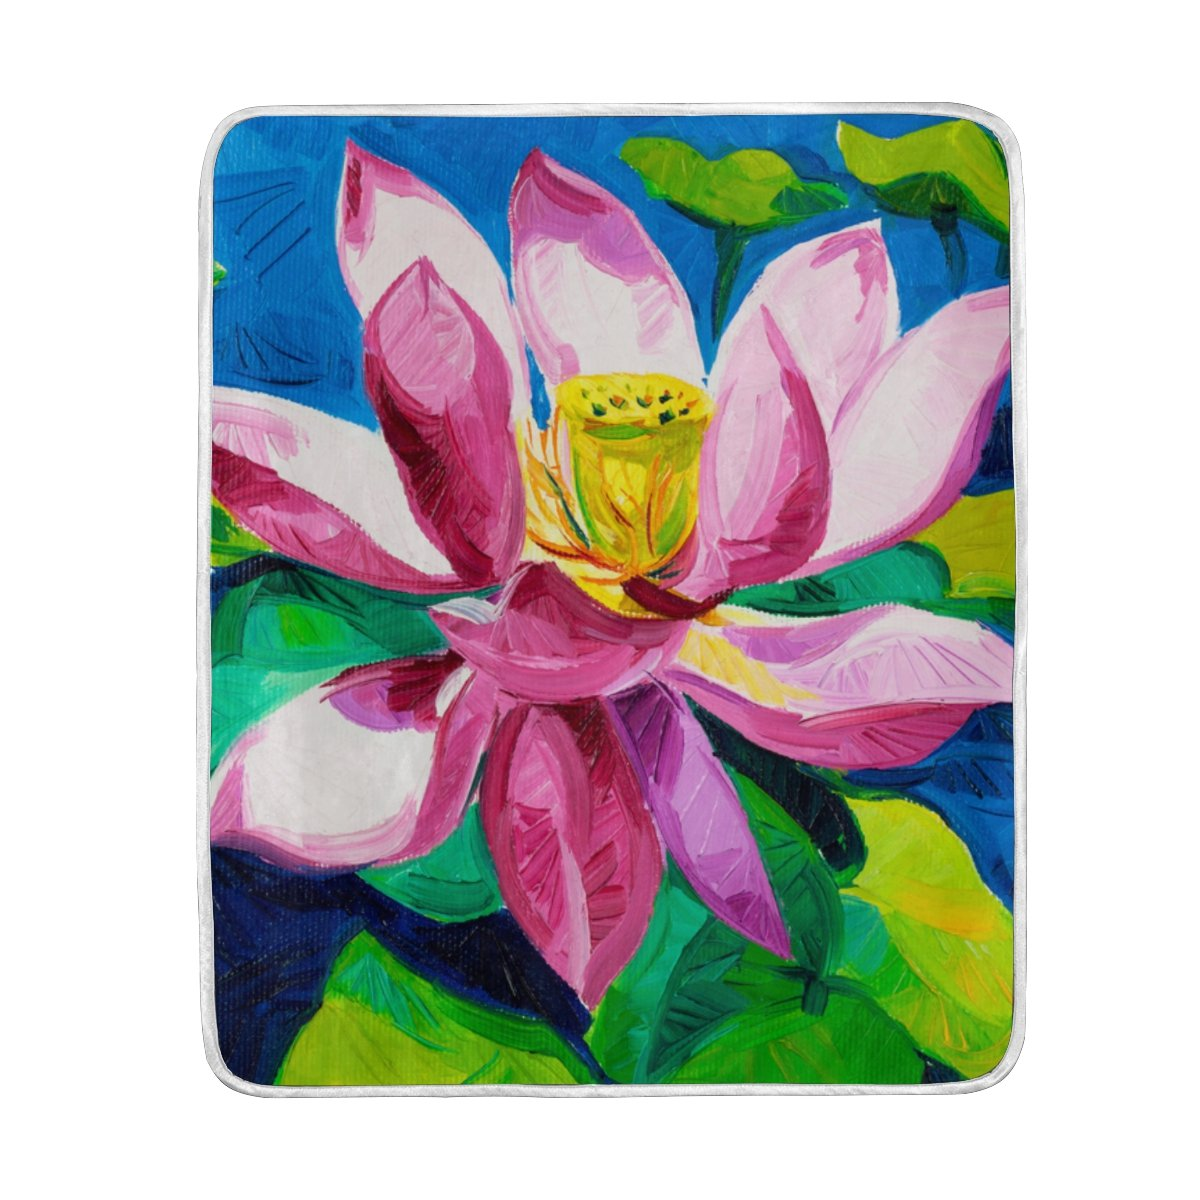 Amazoncom My Little Nest Warm Throw Blanket Oil Painting Lotus